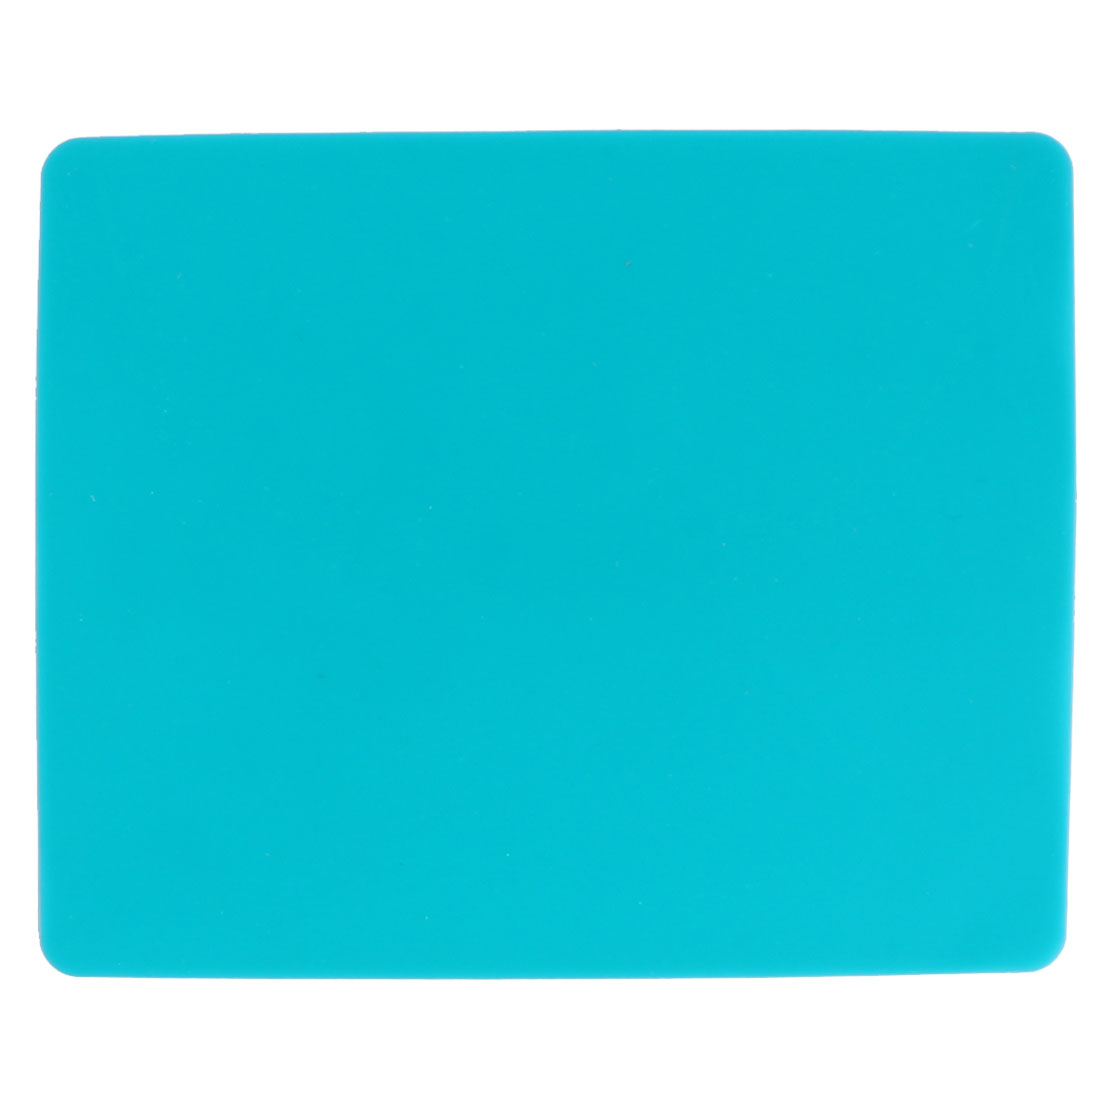 Rectangle Teal Silicone Nonslip Mouse Pad Mat for Computer